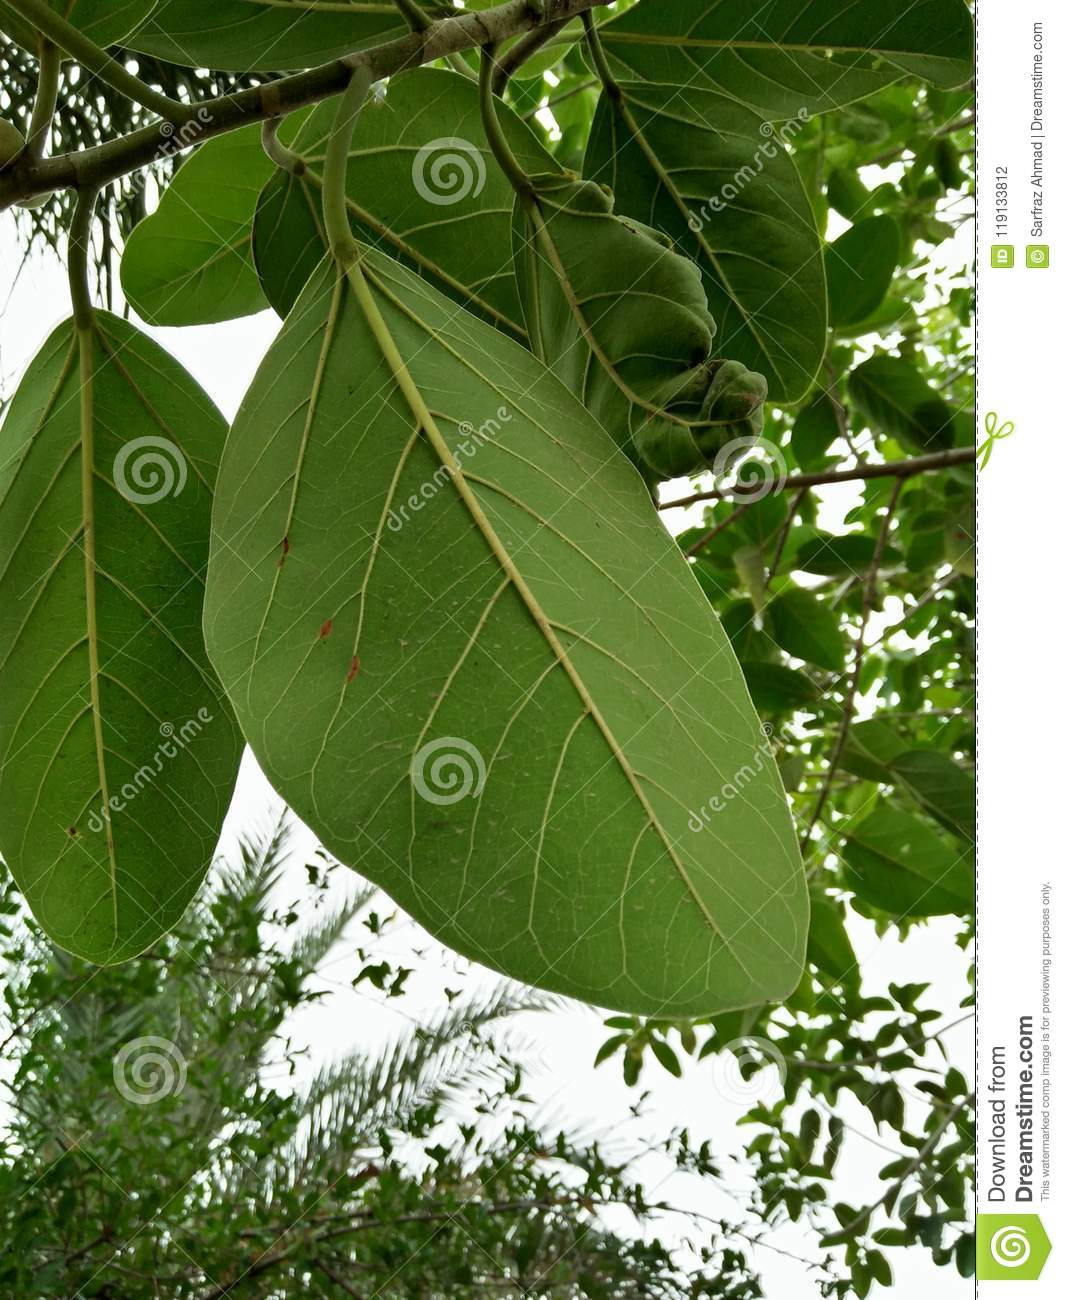 RUBBER TREE /RUBBER FIG TREE /RUBBER WOOD TREE Stock Photo